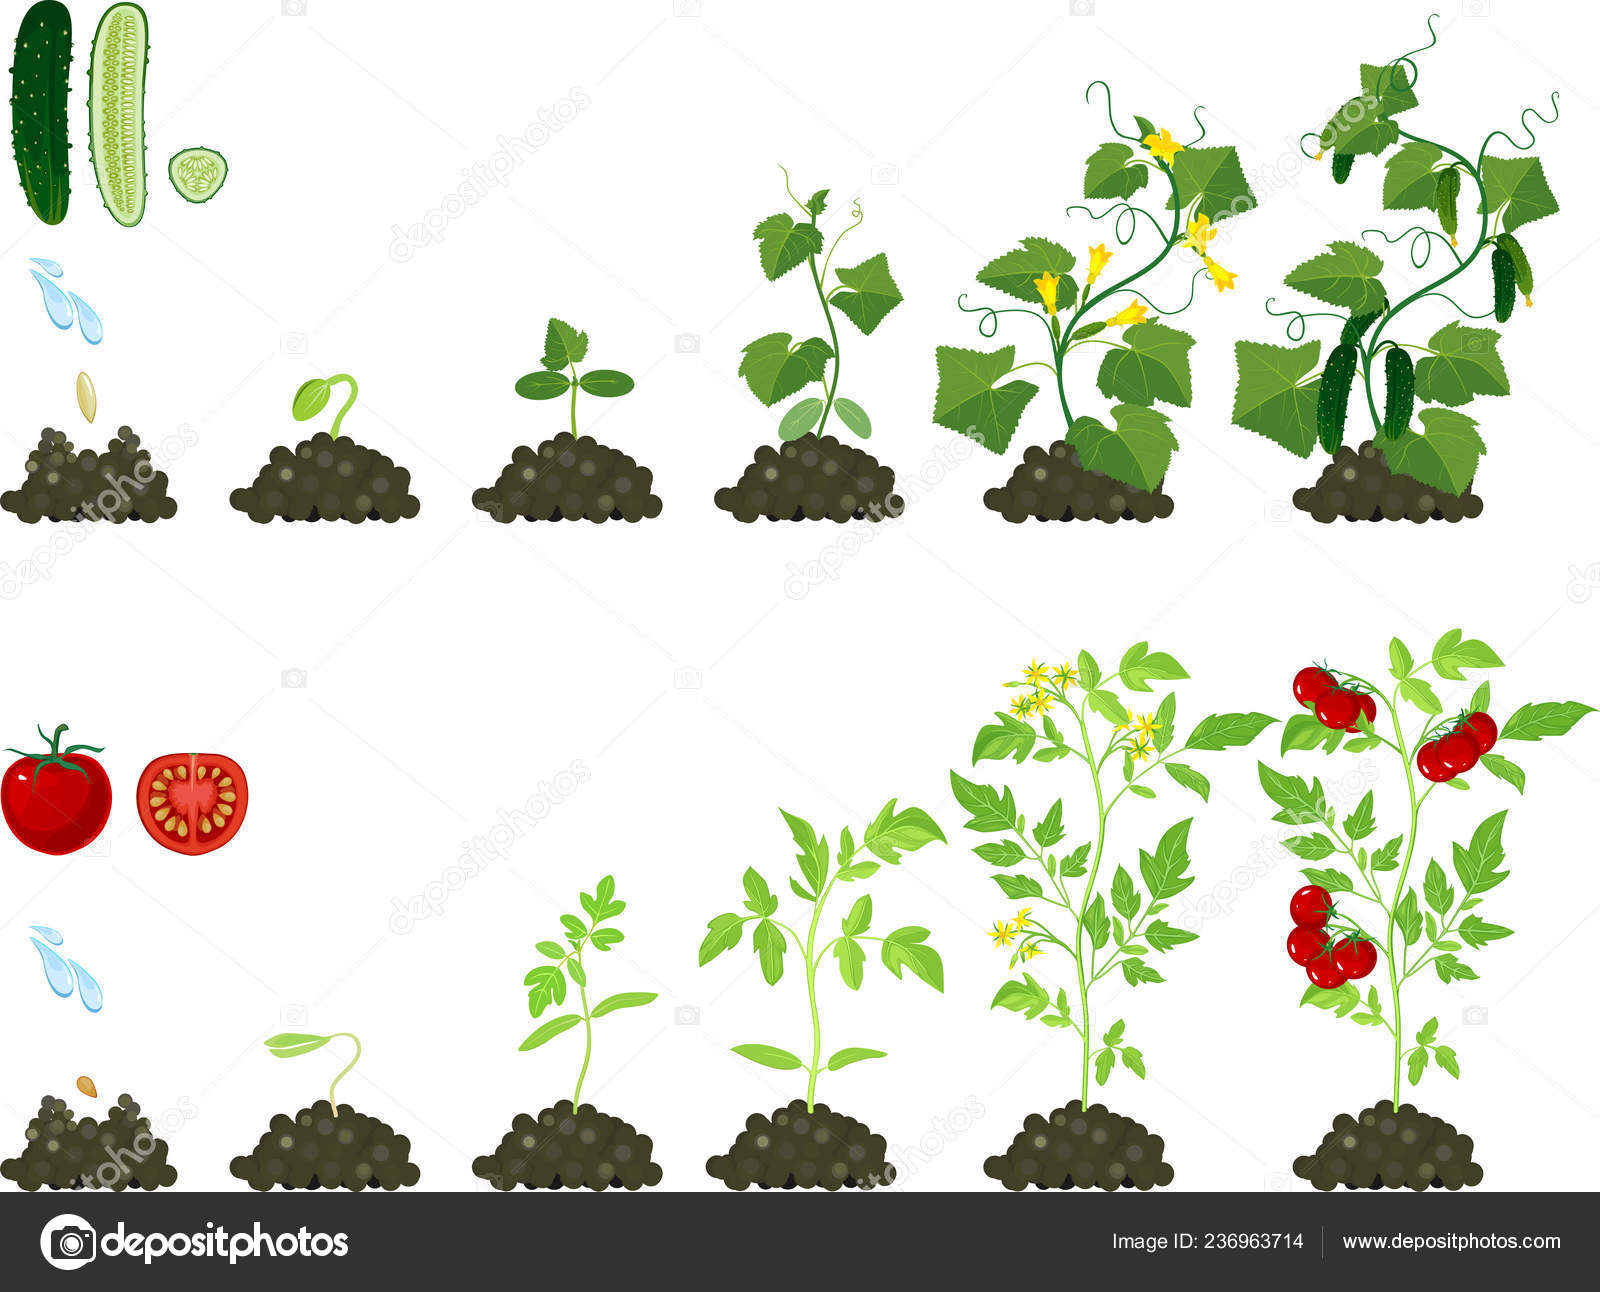 Set Life Cycles Agricultural Plants Growth Stages Tomato